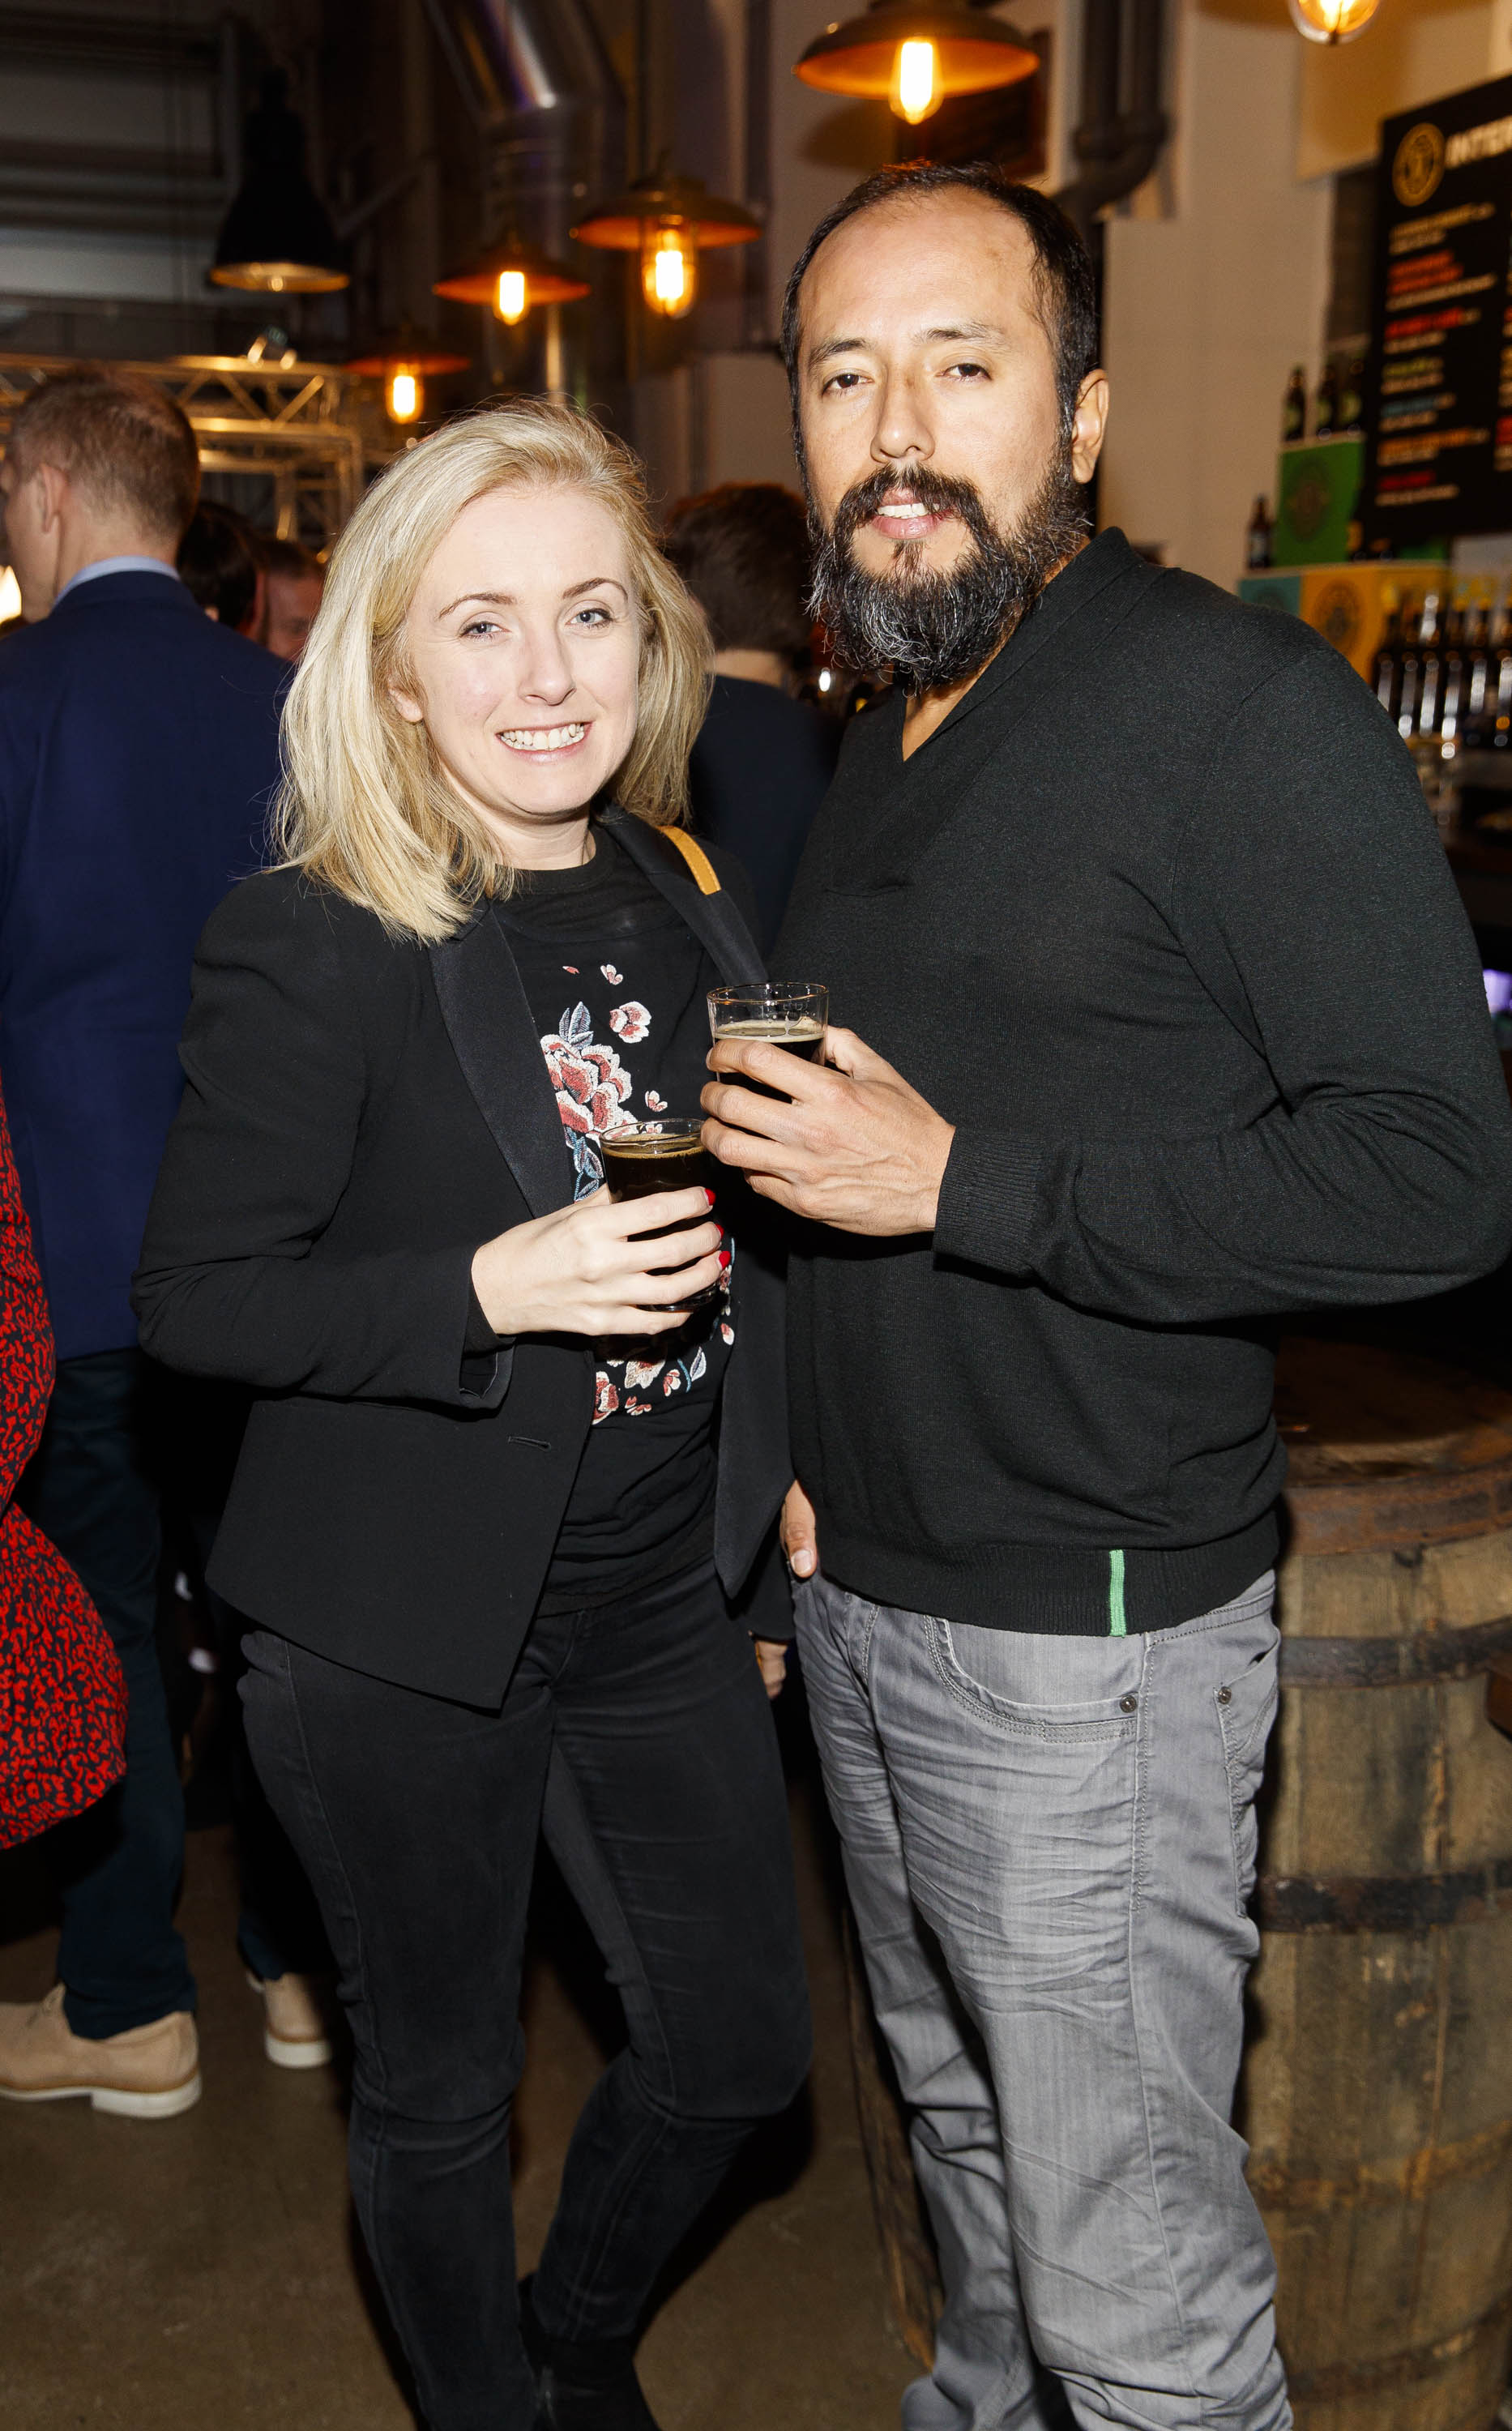 STOUT OF THIS WORLD Claire Murphy and Gianmarco Alvarado pictured on International Stout Day as Guinness celebrated innovation in brewing with a future of stout summit.    Guinness together with guest brewers and a host of experts from around the world, celebrated bravery in brewing by hosting a Future of Stout Summit, focused on stout innovation and the opportunities in brewing this unique style of beer.   At the summit, Guinness announced that its brewers are set to work on a feasibility study, which will investigate the viability of brewing a Guinness fit to be enjoyed in space. Through further research, innovation and experimentation, Guinness will draw on over 259 years of experience in the hope of making a breakthrough.     Hosted in the Open Gate Brewery, the home of beer innovation and experimentation at Guinness, the stout summit was attended by a team of brewers from the St. James's Gate Brewery in Dublin and other brewers from around the world including the UK, the Netherlands, Korea as well as brewers from all over Ireland. Inspiration at the summit was also delivered by Dr. Norah Patten, who is set to be the first Irish person to travel into space, Kitchen's Theory's Chef, Jozef Youssef and Oxford University Gastrophysics Professor, Charles Spence, who together are on a continuous odyssey to research and demystify the field of gastronomy, and Erin Peters, the beer writer behind International Stout Day. Picture Andres Poveda More information can be found at www.guinness.com   Enjoy Guinness Sensibly. Visit www.drinkaware.ie.